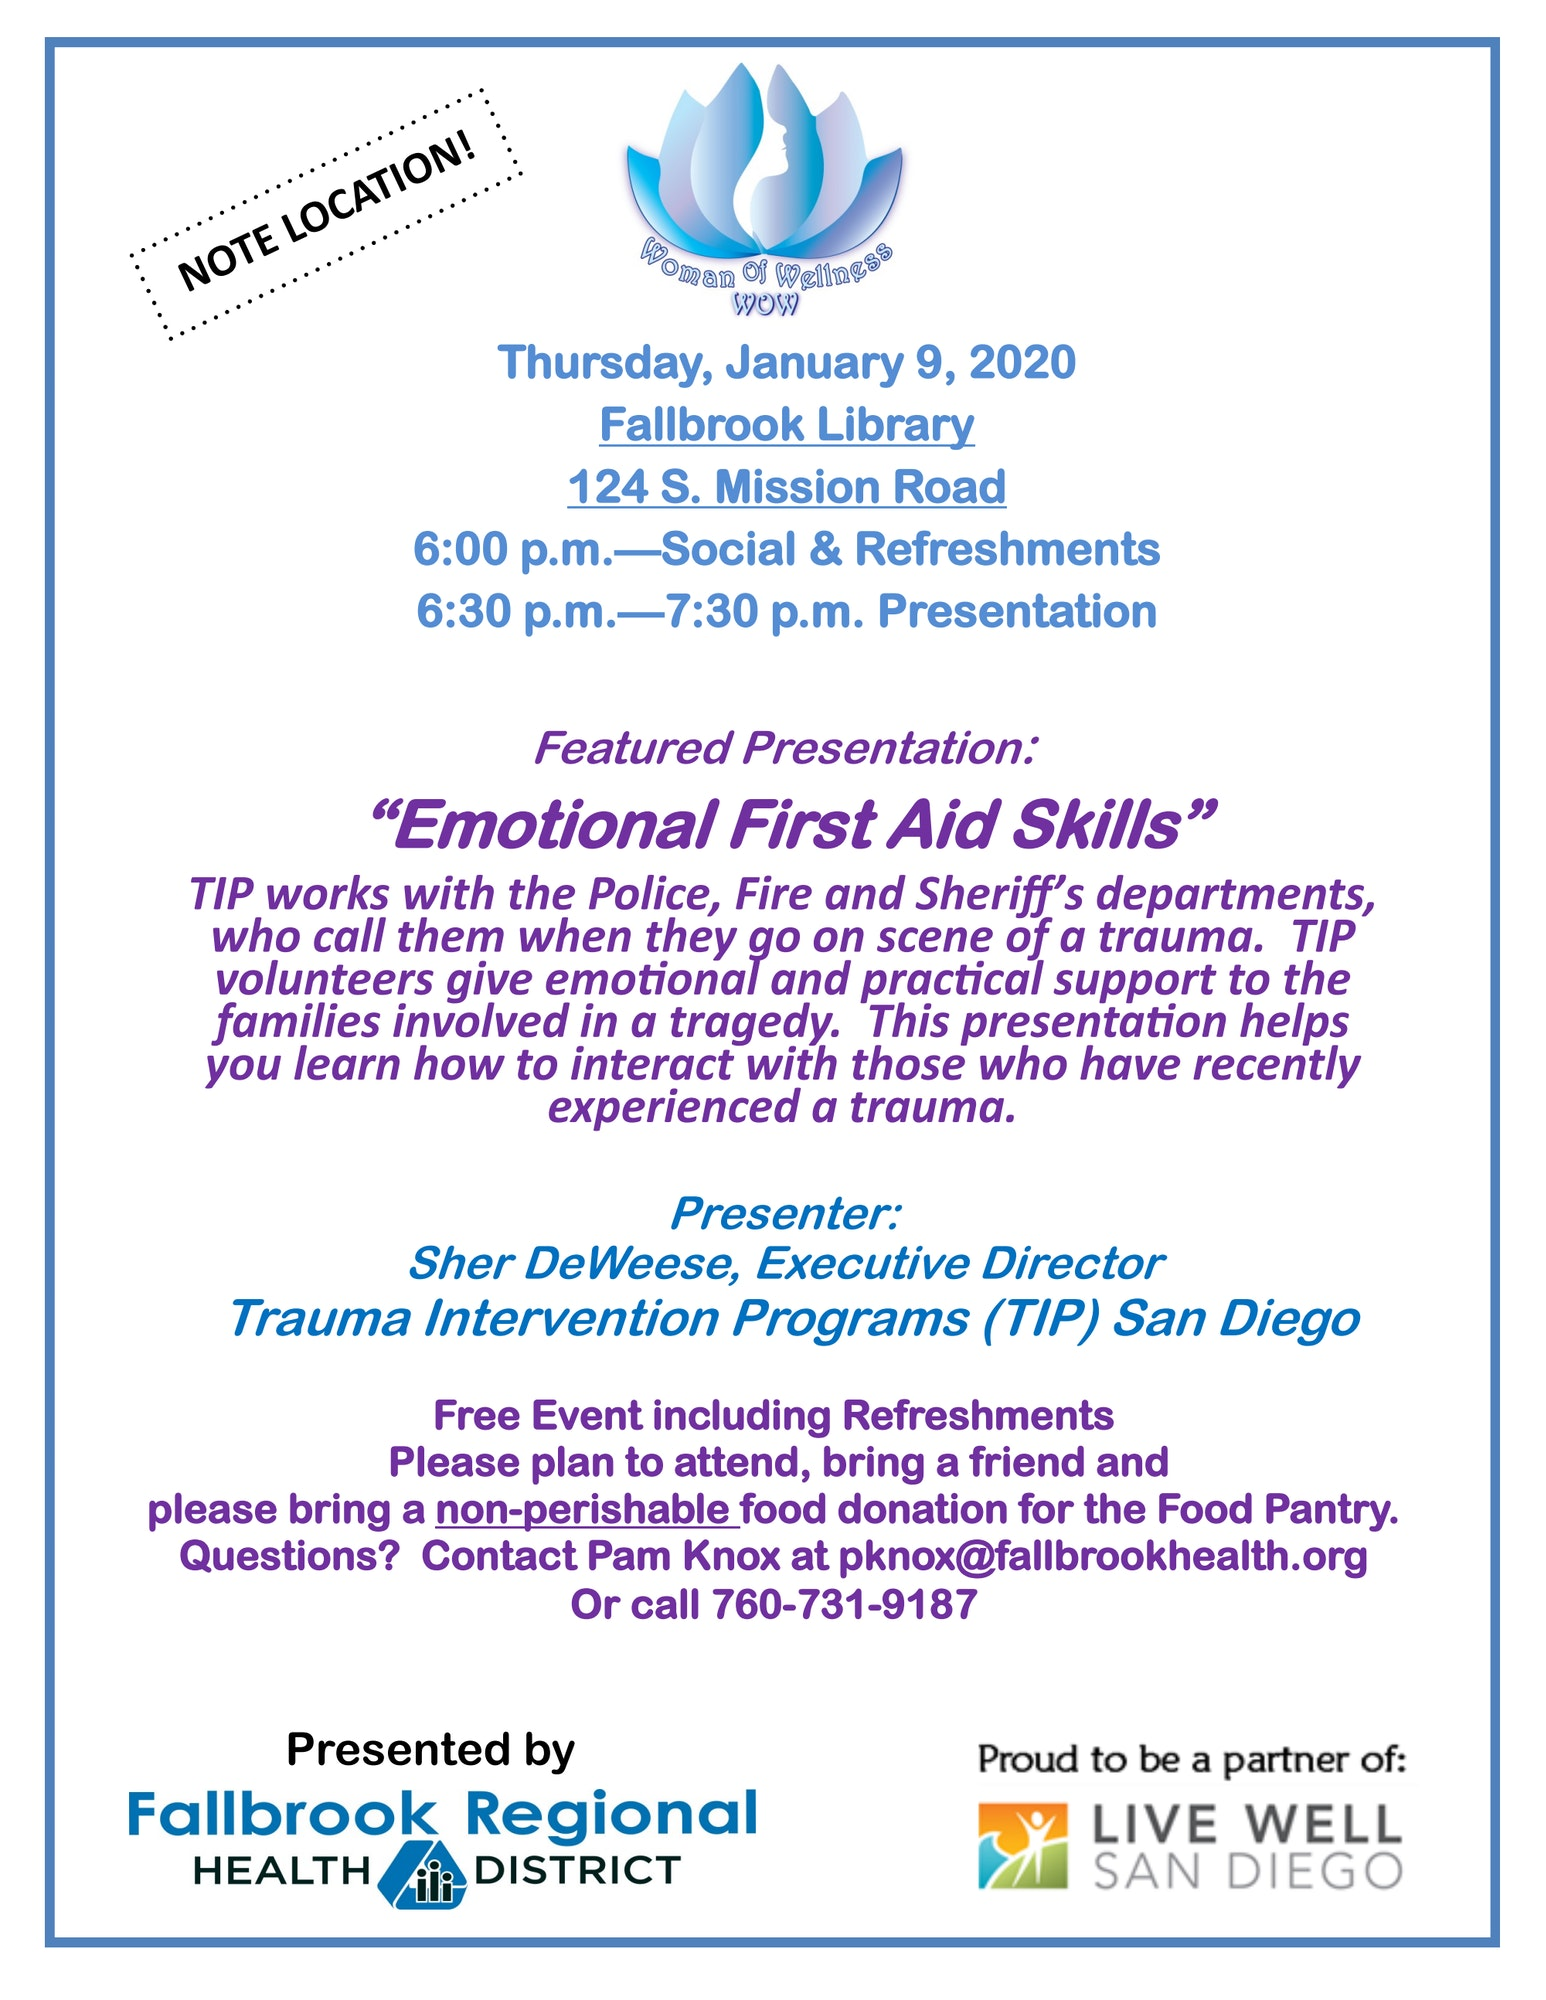 Emotional First Aid Skills by Sher DeWeese of TIP at the Fallbrook Library, 124 S. Mission Rd. at 6:00pm